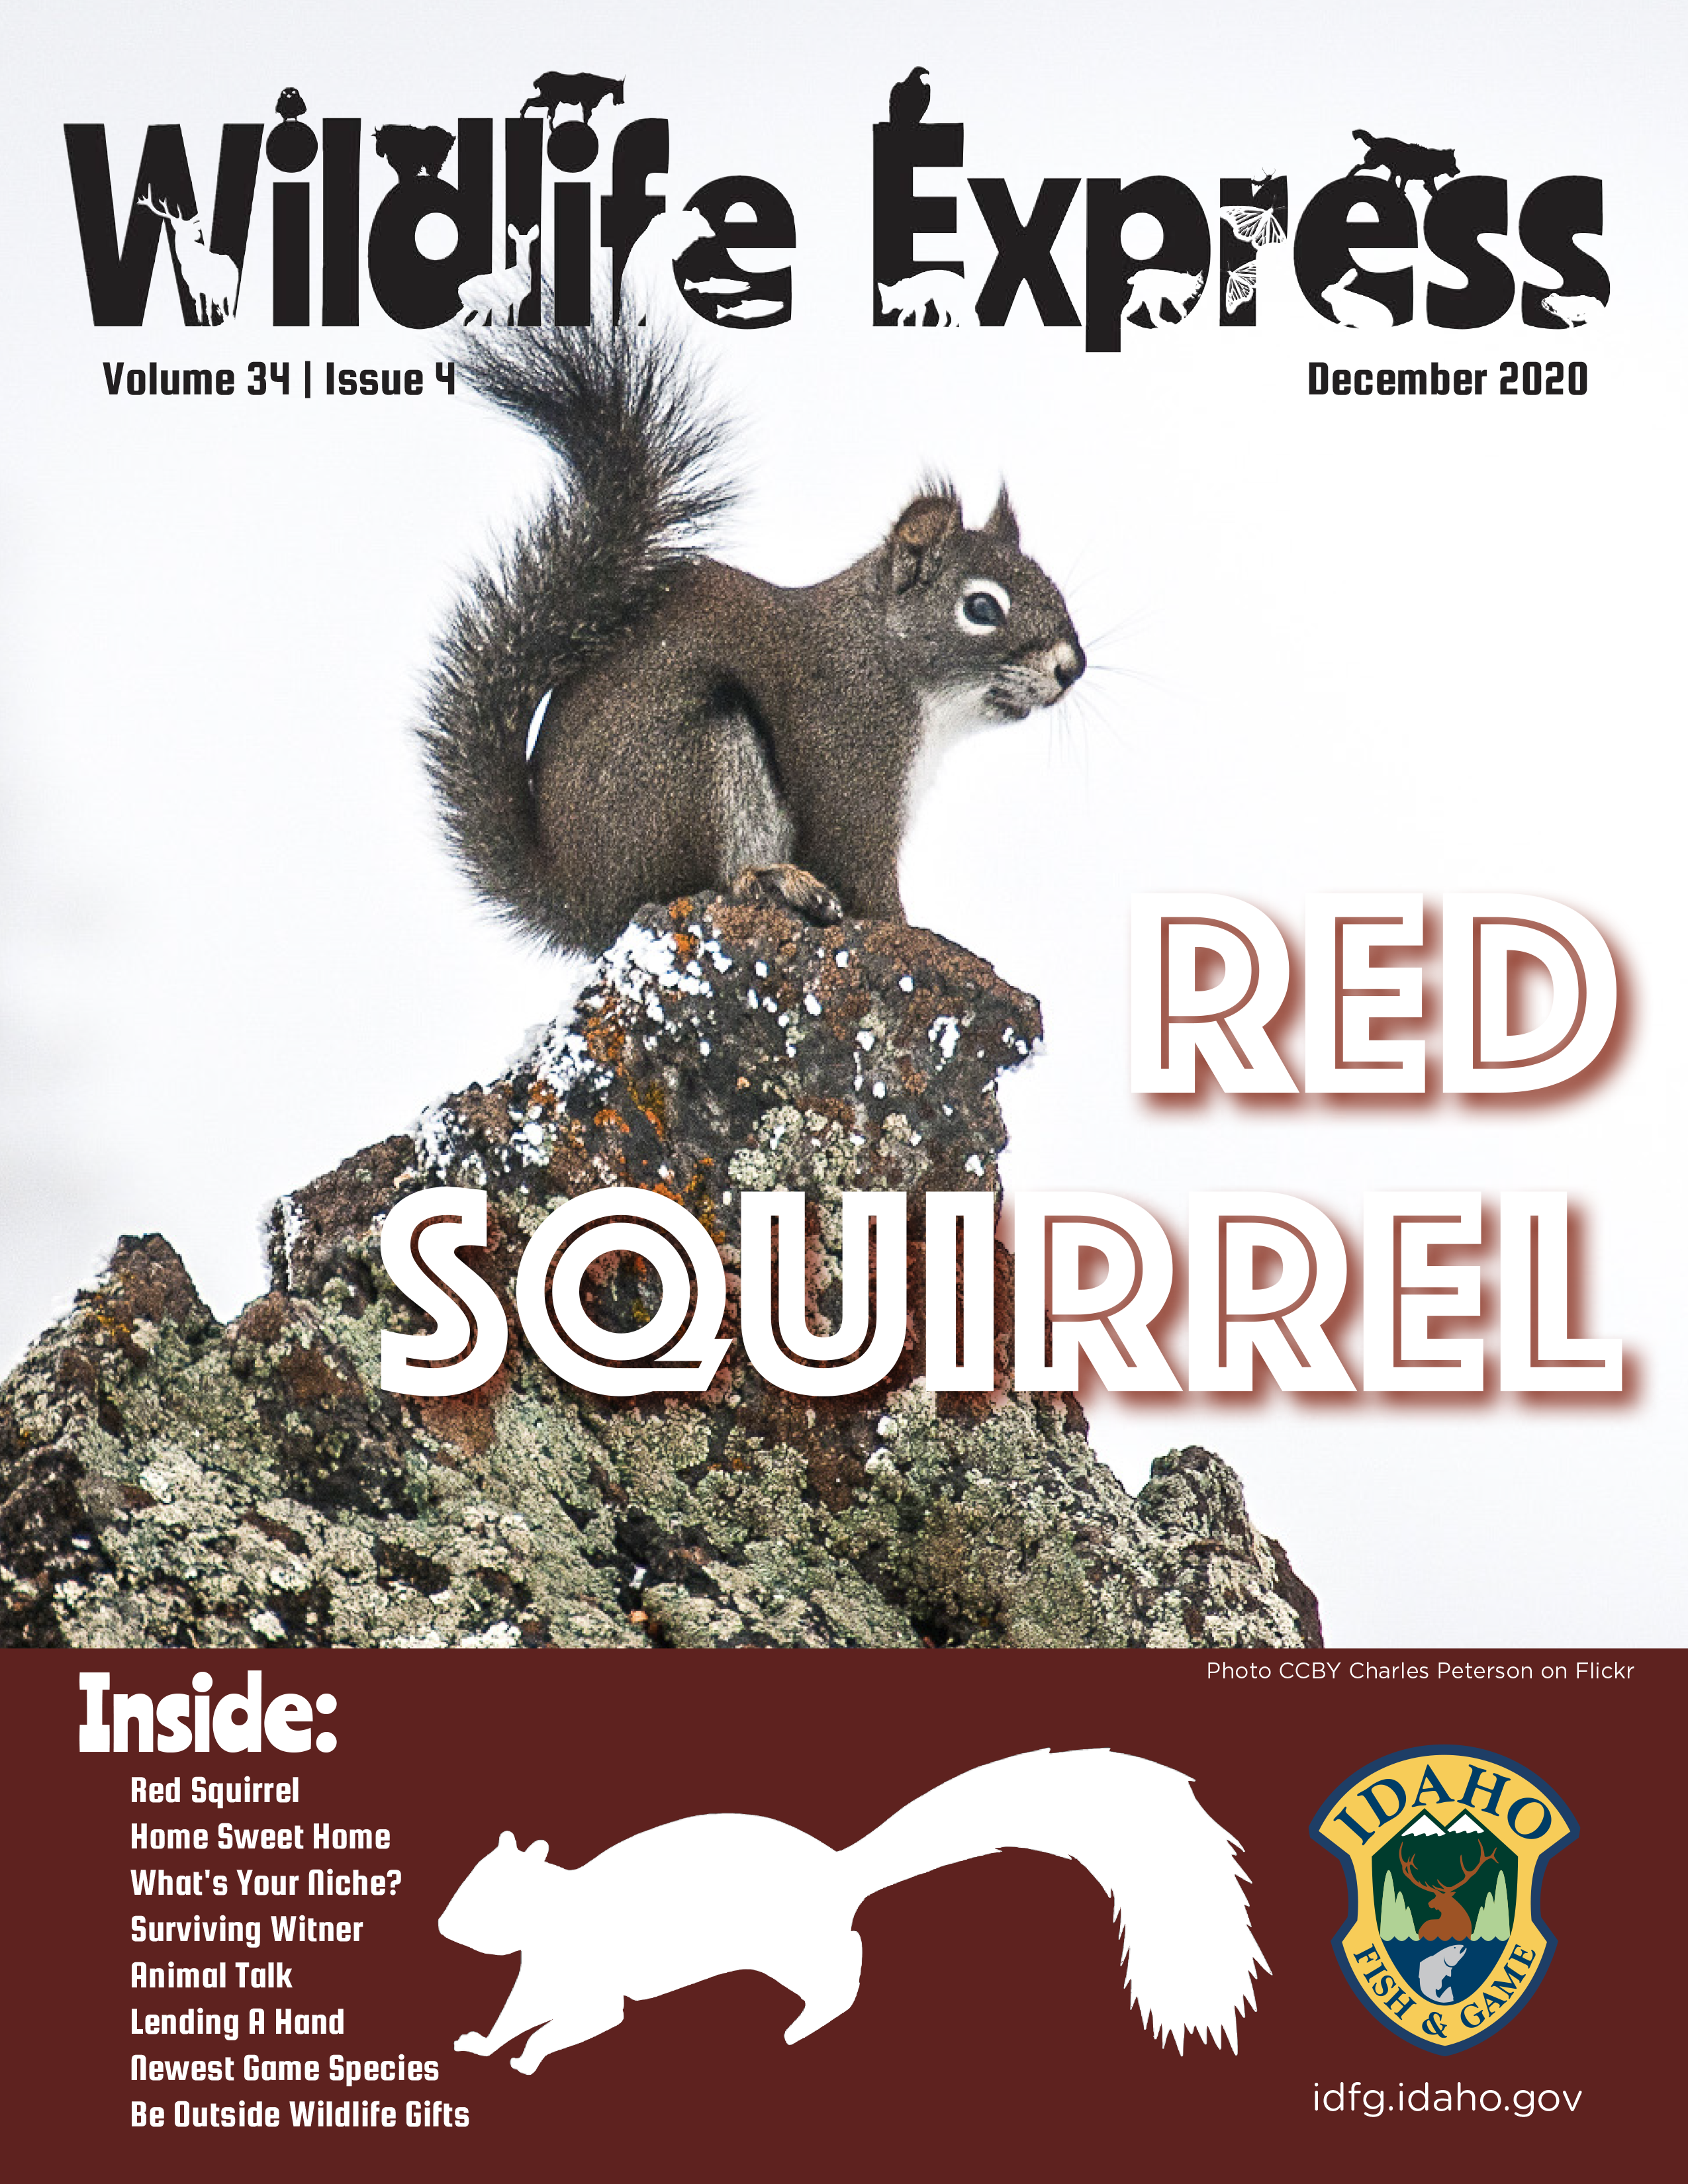 Wildlife Express magazine cover with a squirrel perched on a rock with the words Red Squirrel across the bottom.